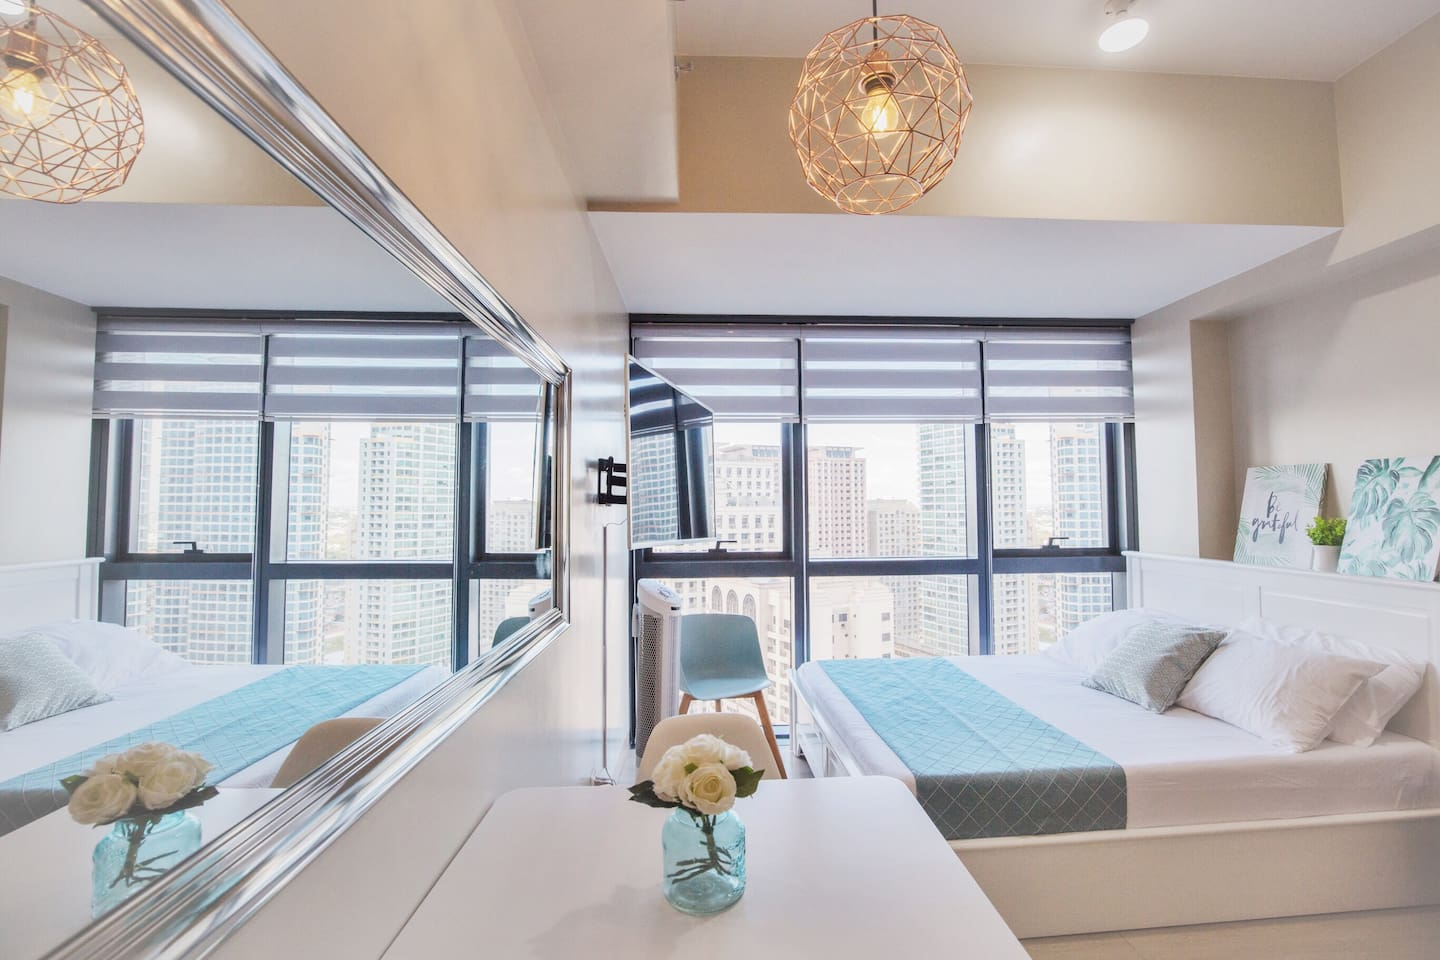 Cozy 24sqm studio home for your staycation